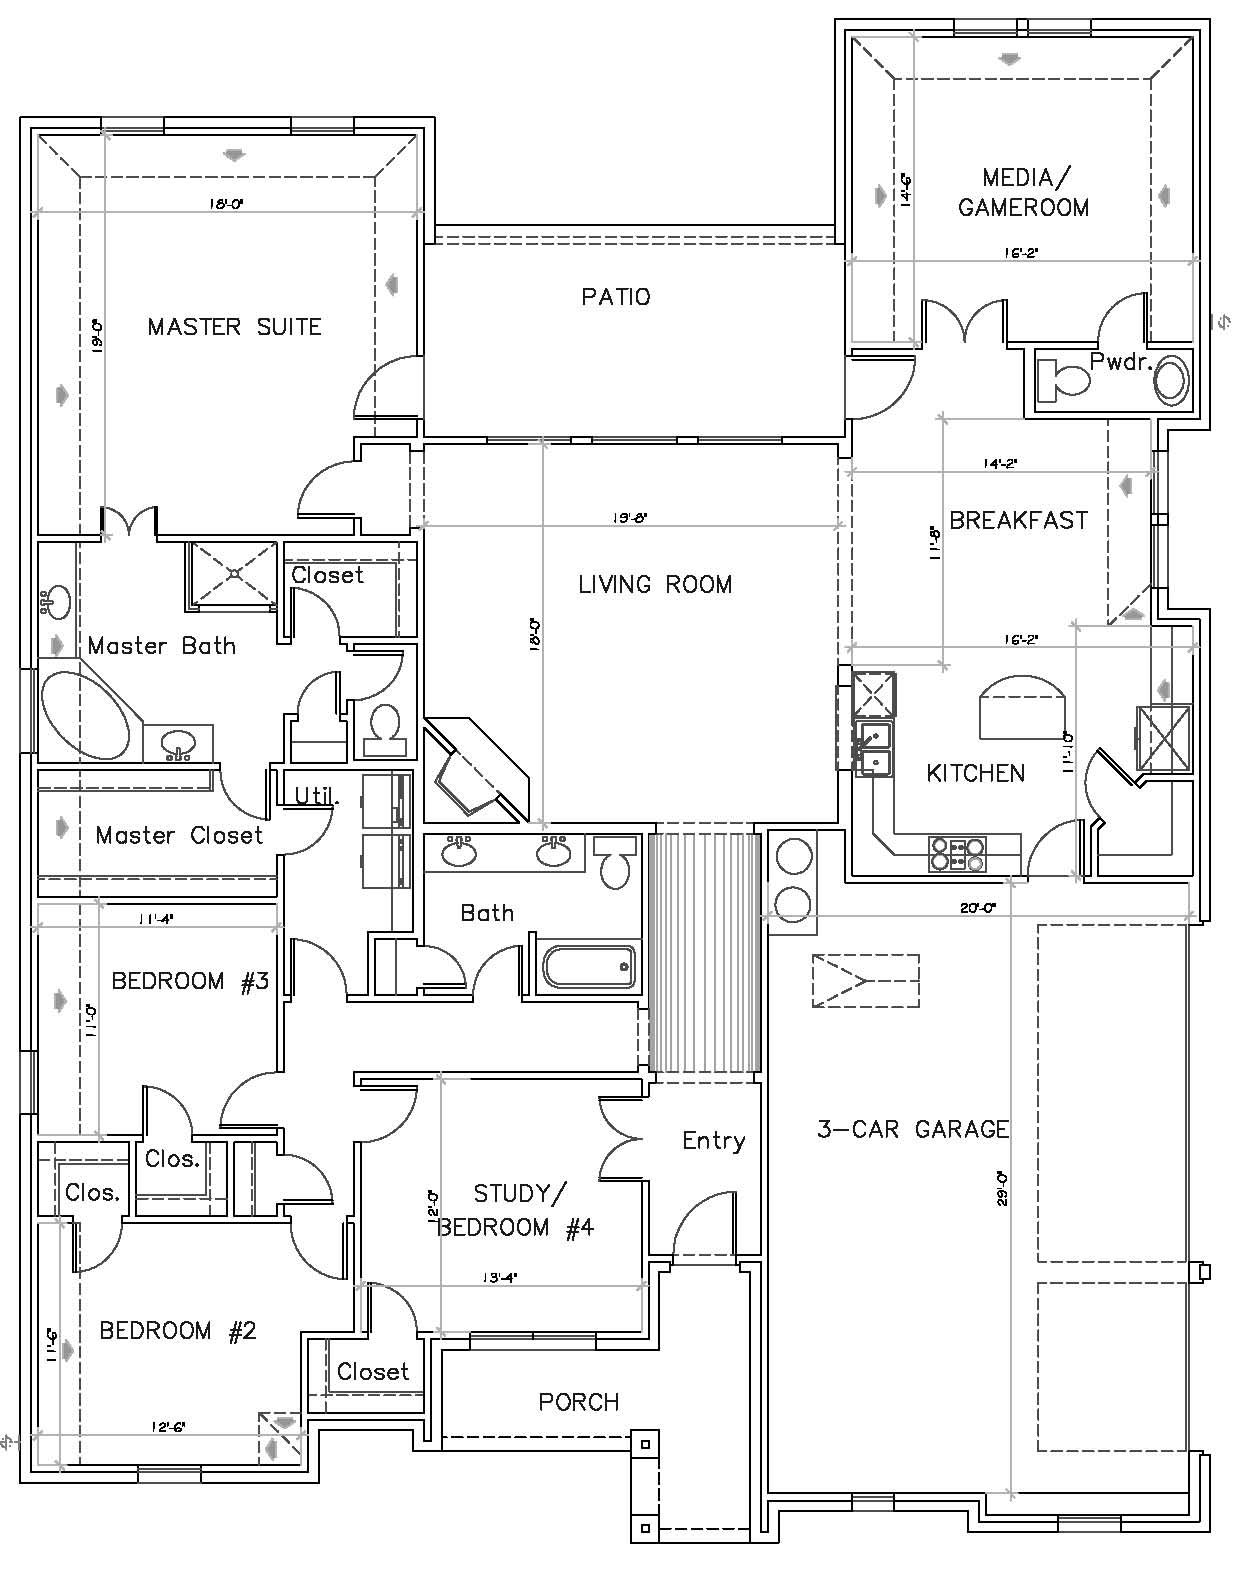 southfork ranch floor plan southfork ranch house plans